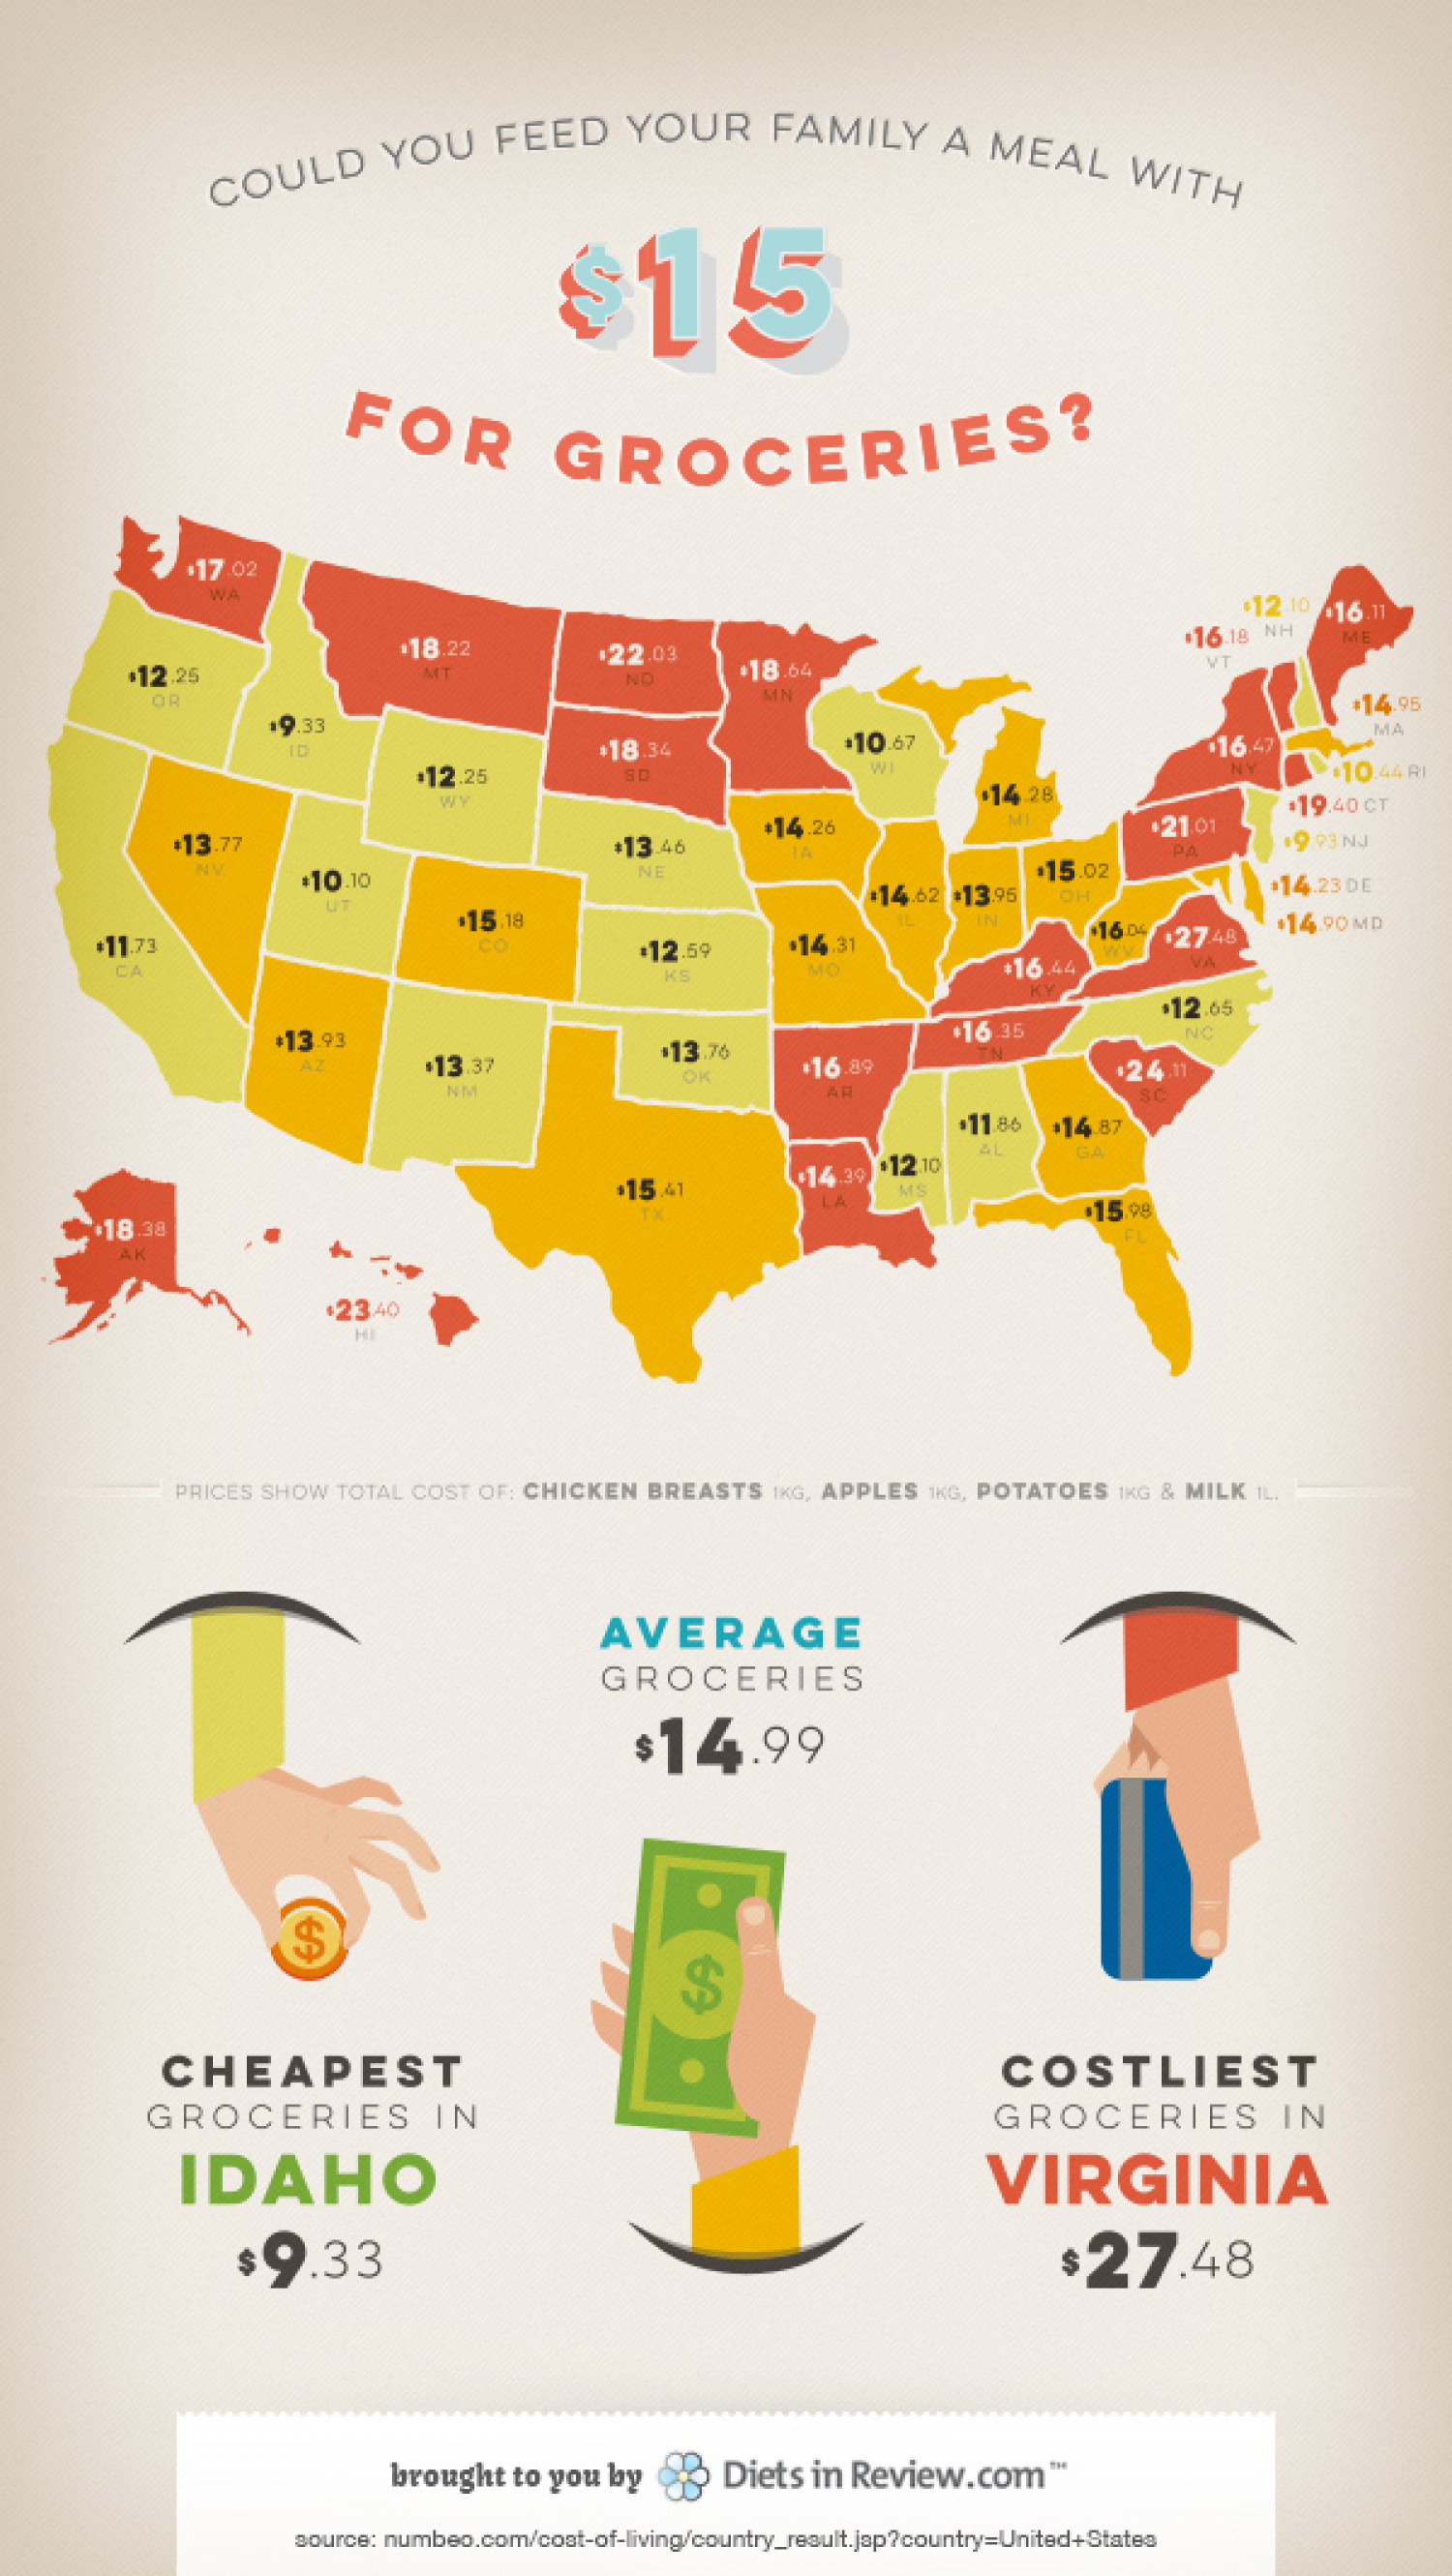 Could You Feed Your Family a Meal with $15 for Groceries? Infographic